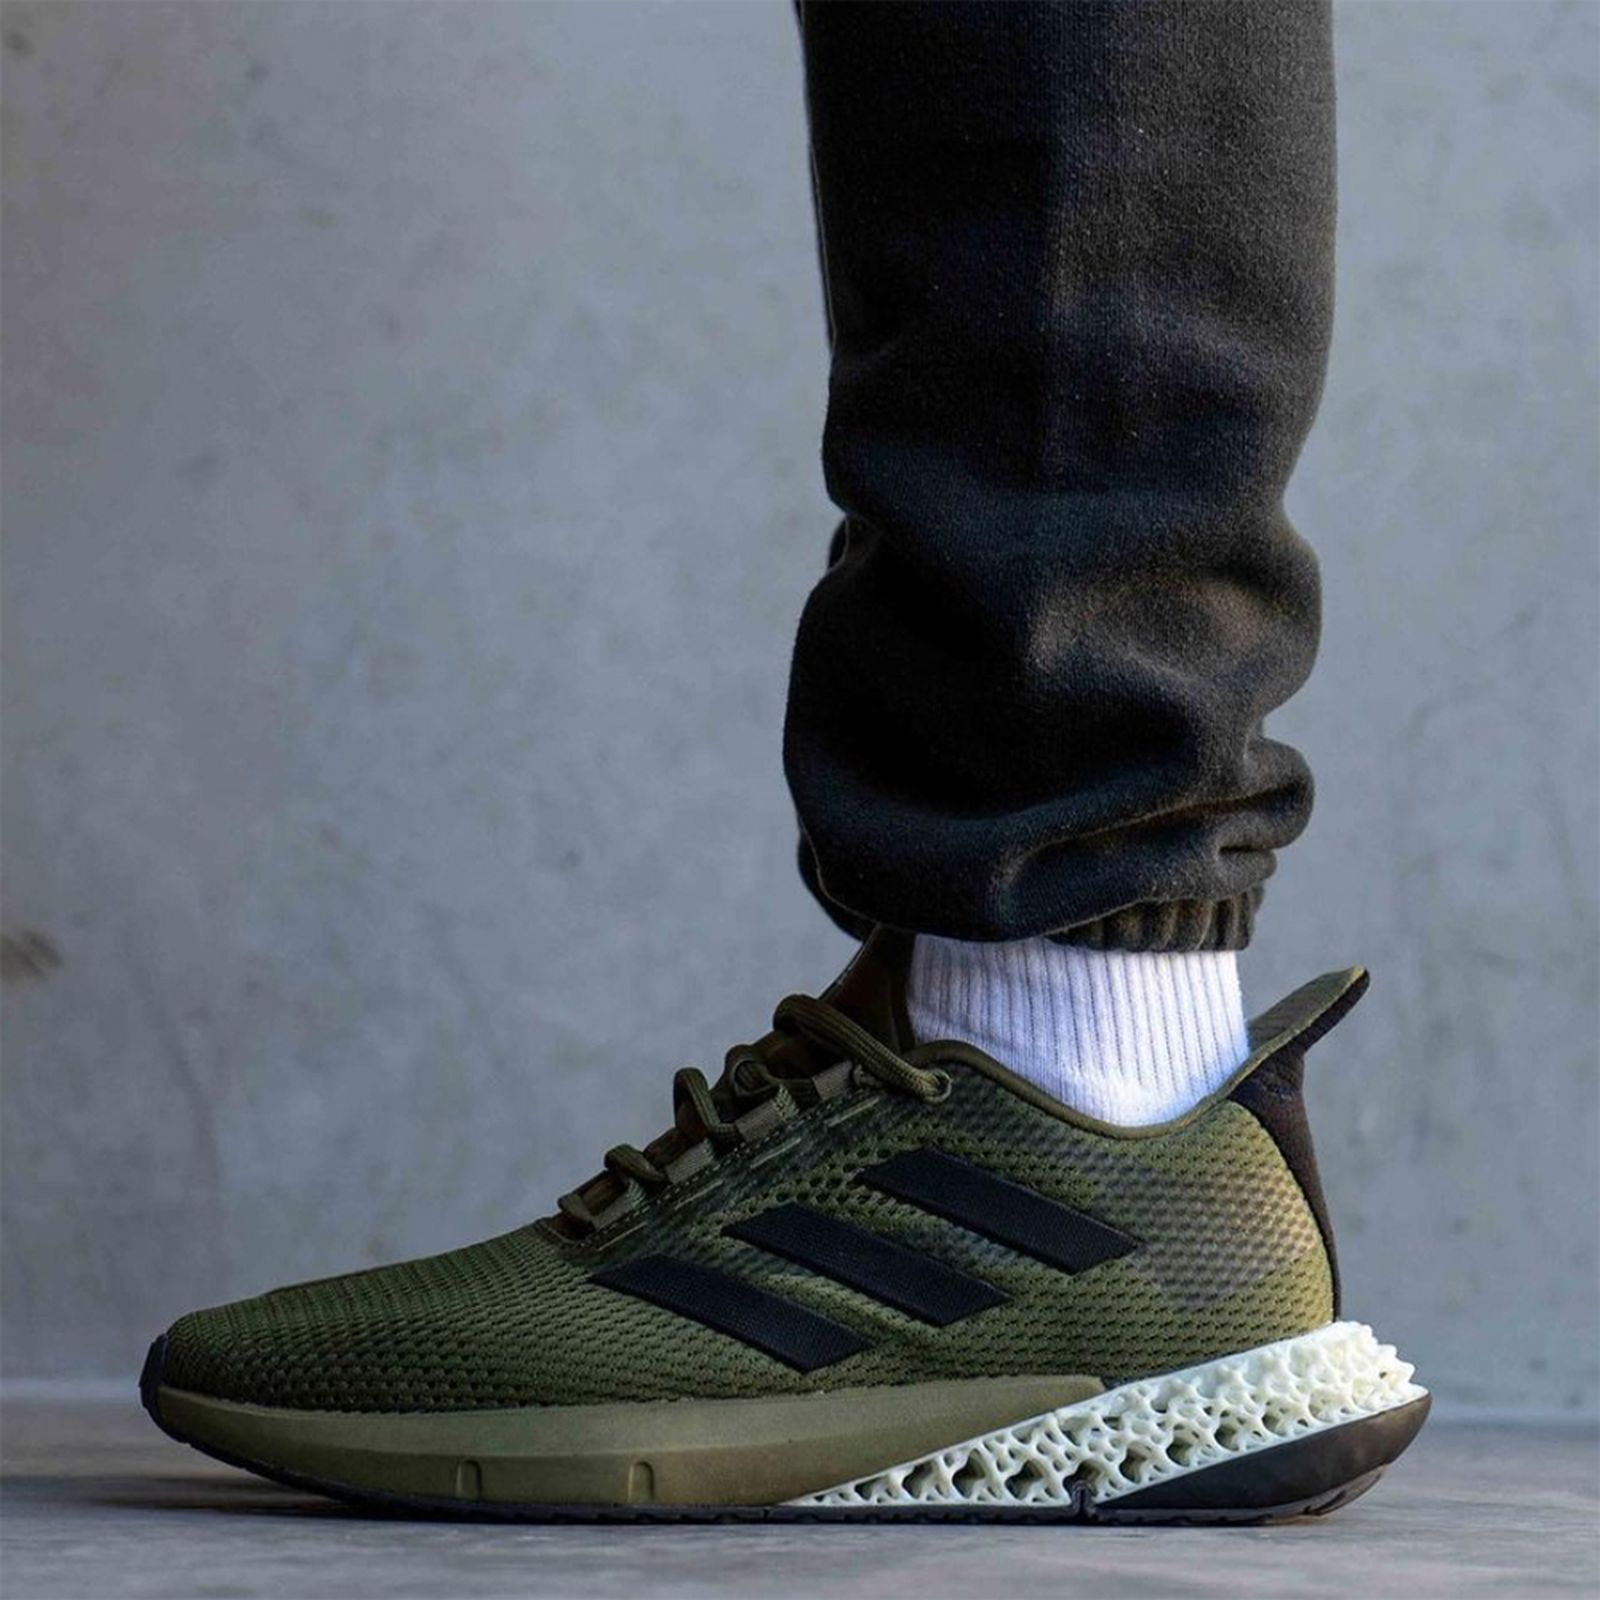 adidas-4d-kick-release-date-price-04